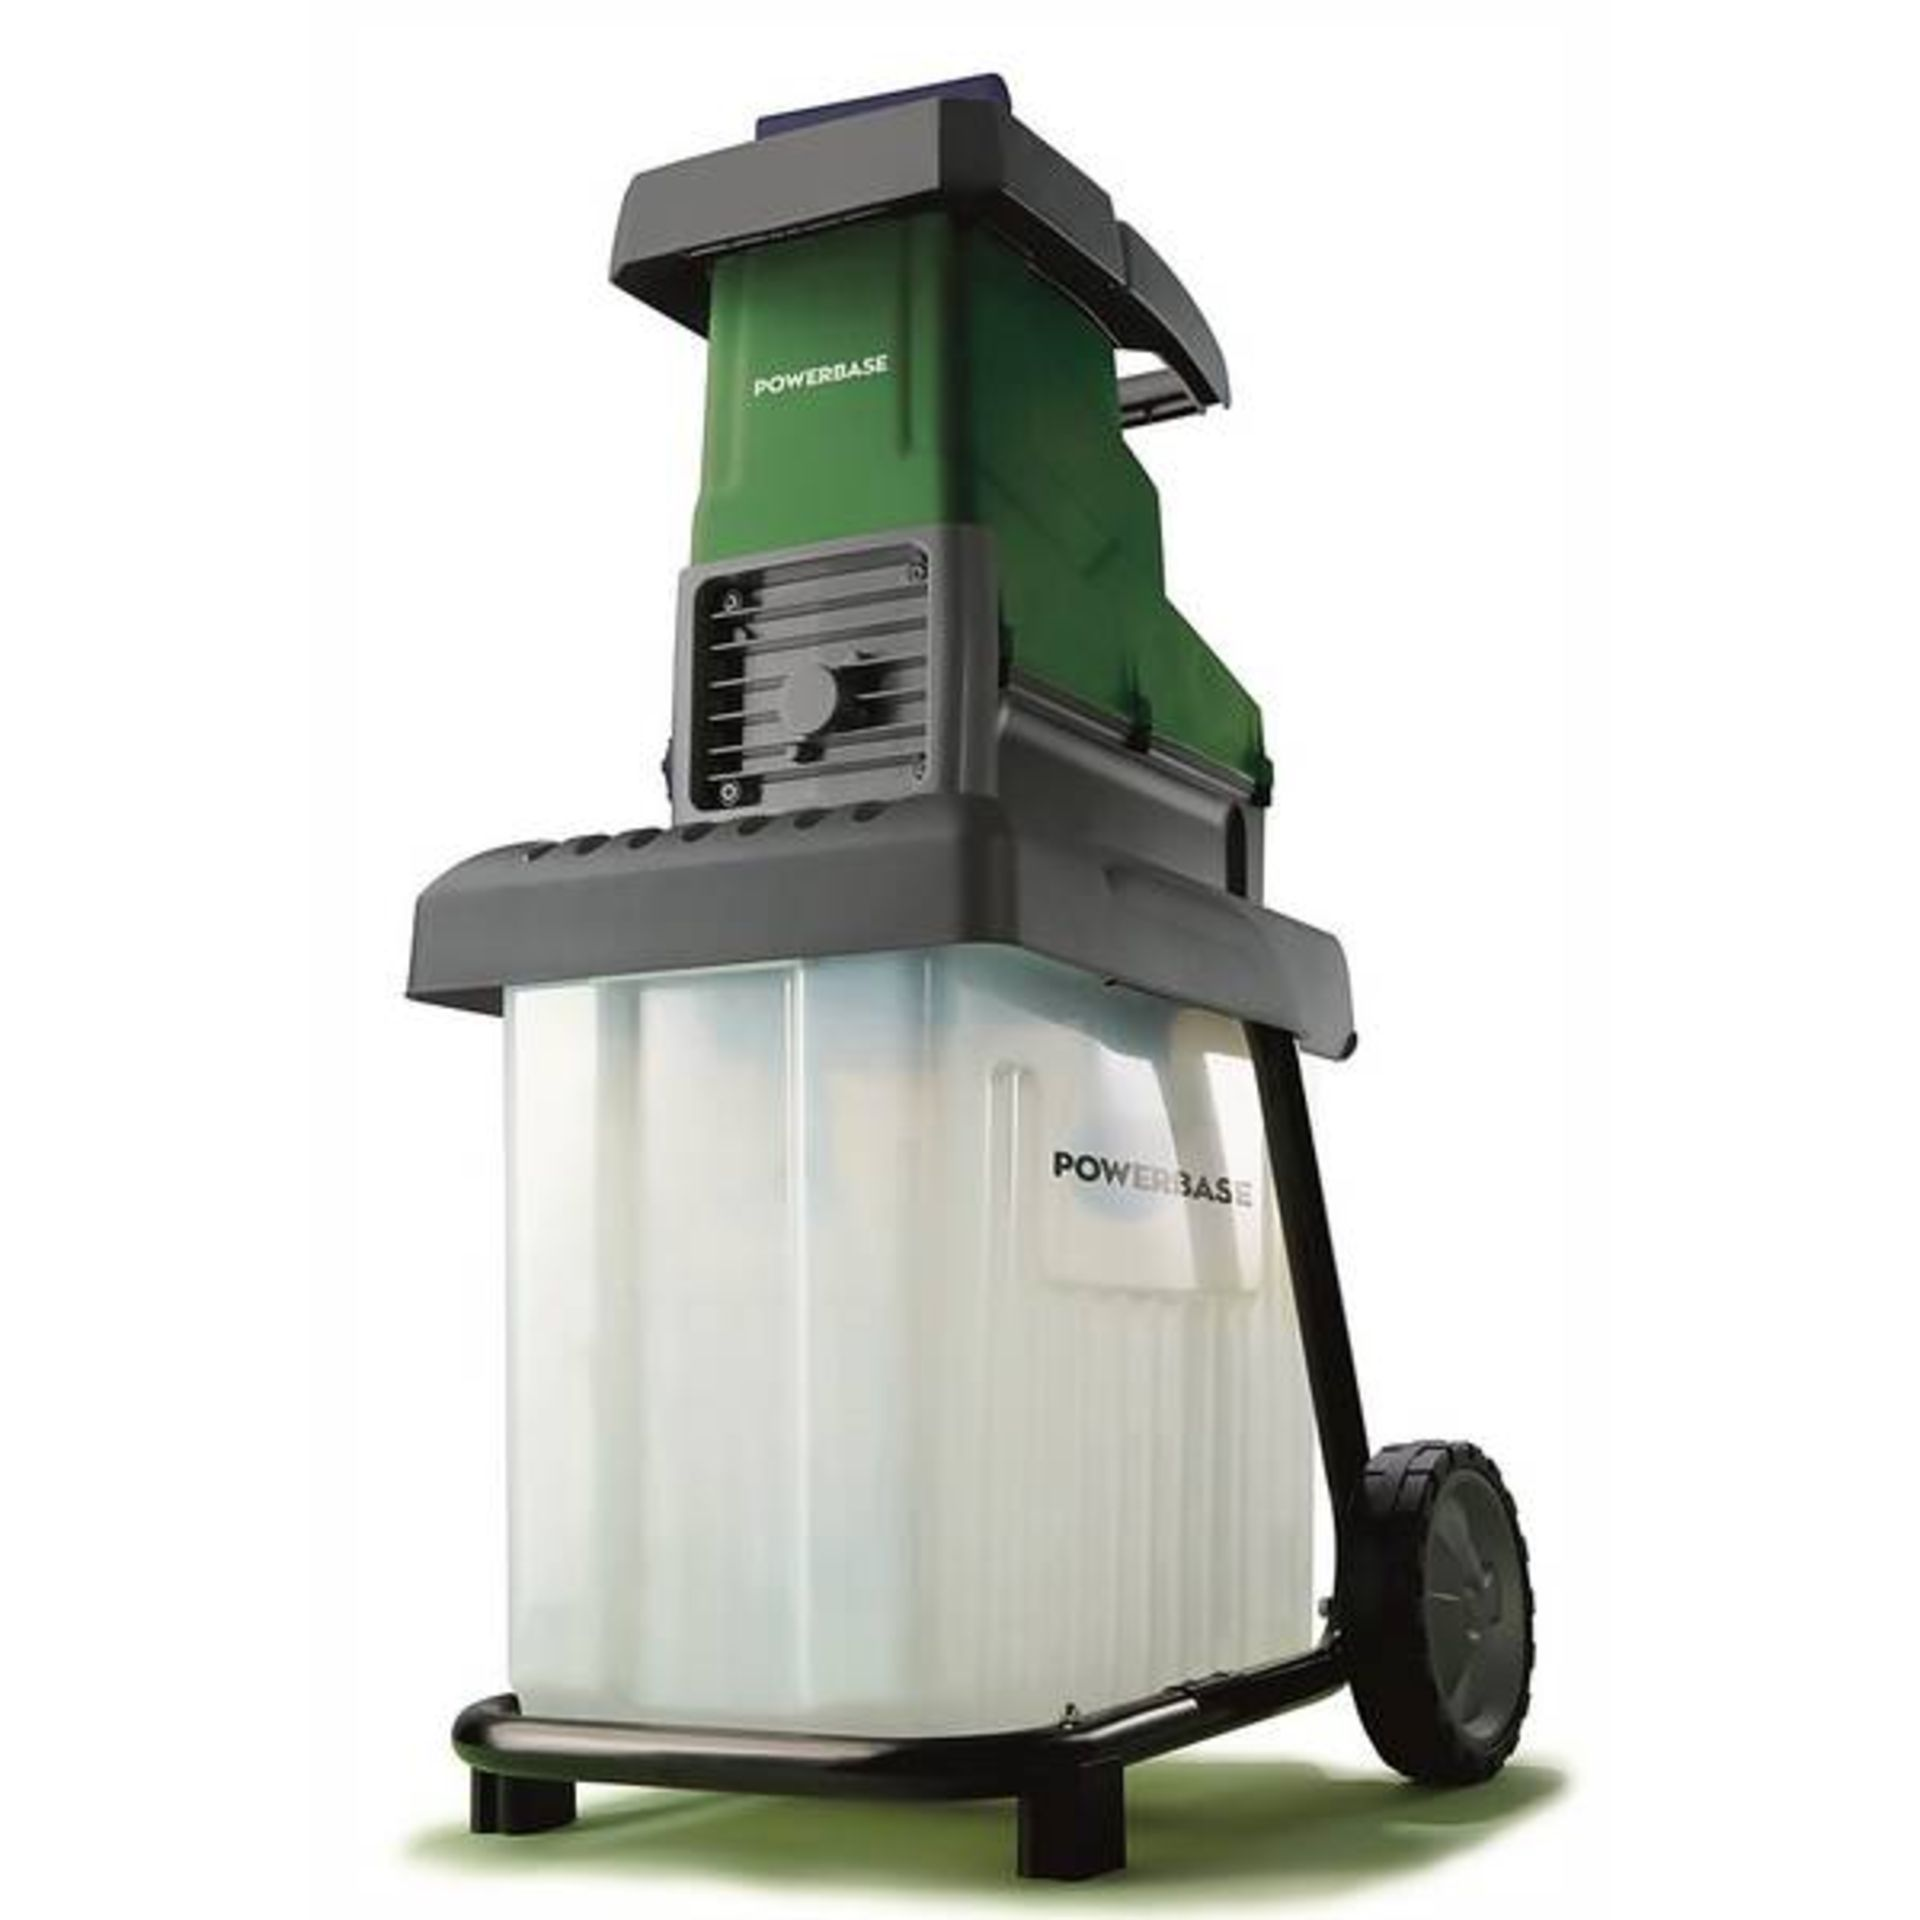 (P3) 1x Powerbase 42cm 2800W Electric Silent Shredder. RRP £175.00. Unit Appears Clean, Unused With